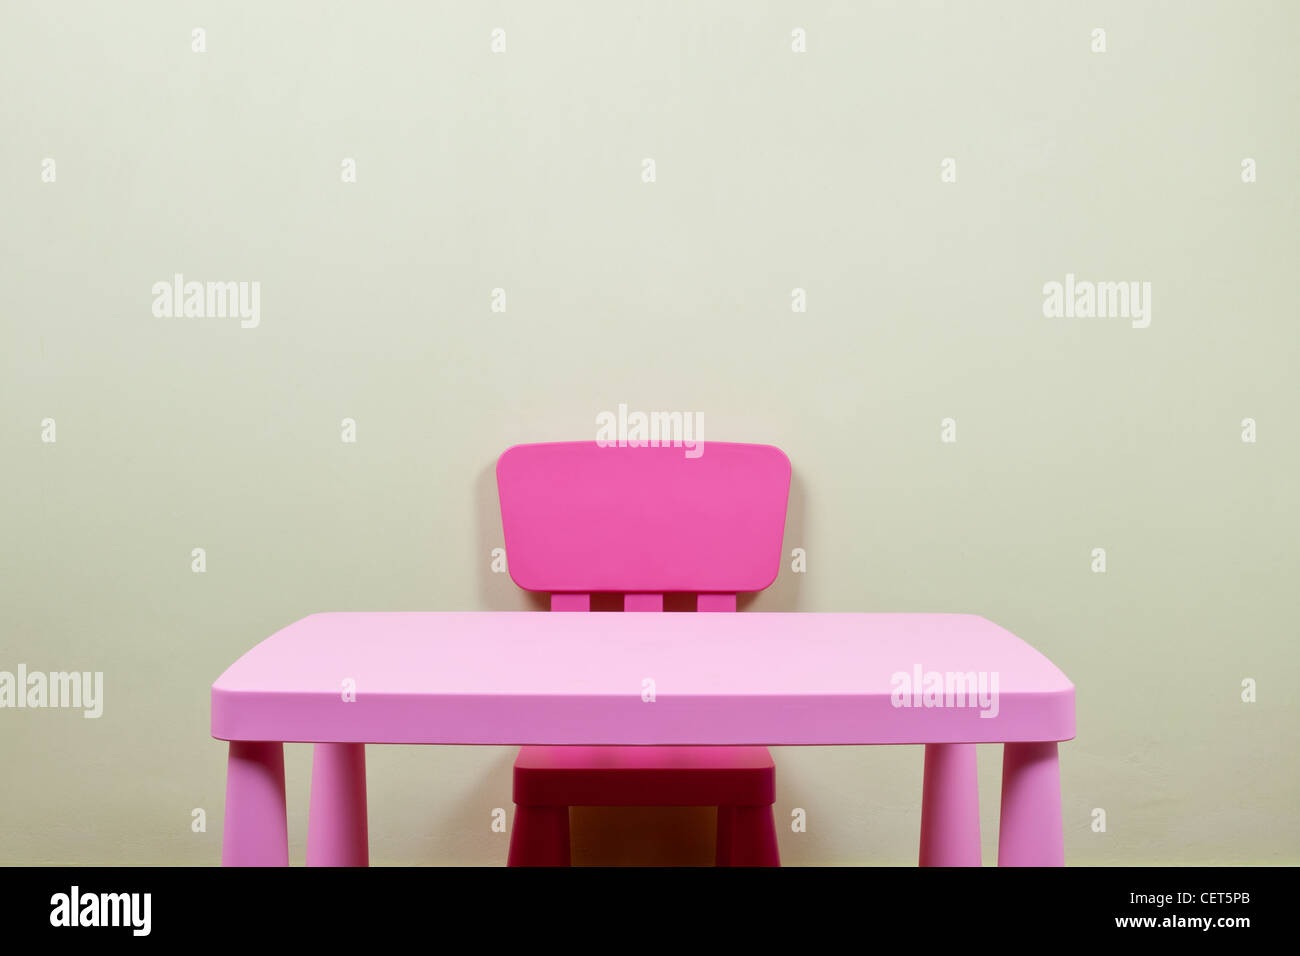 Pink color children desk and chair against a blank wall - Stock Image